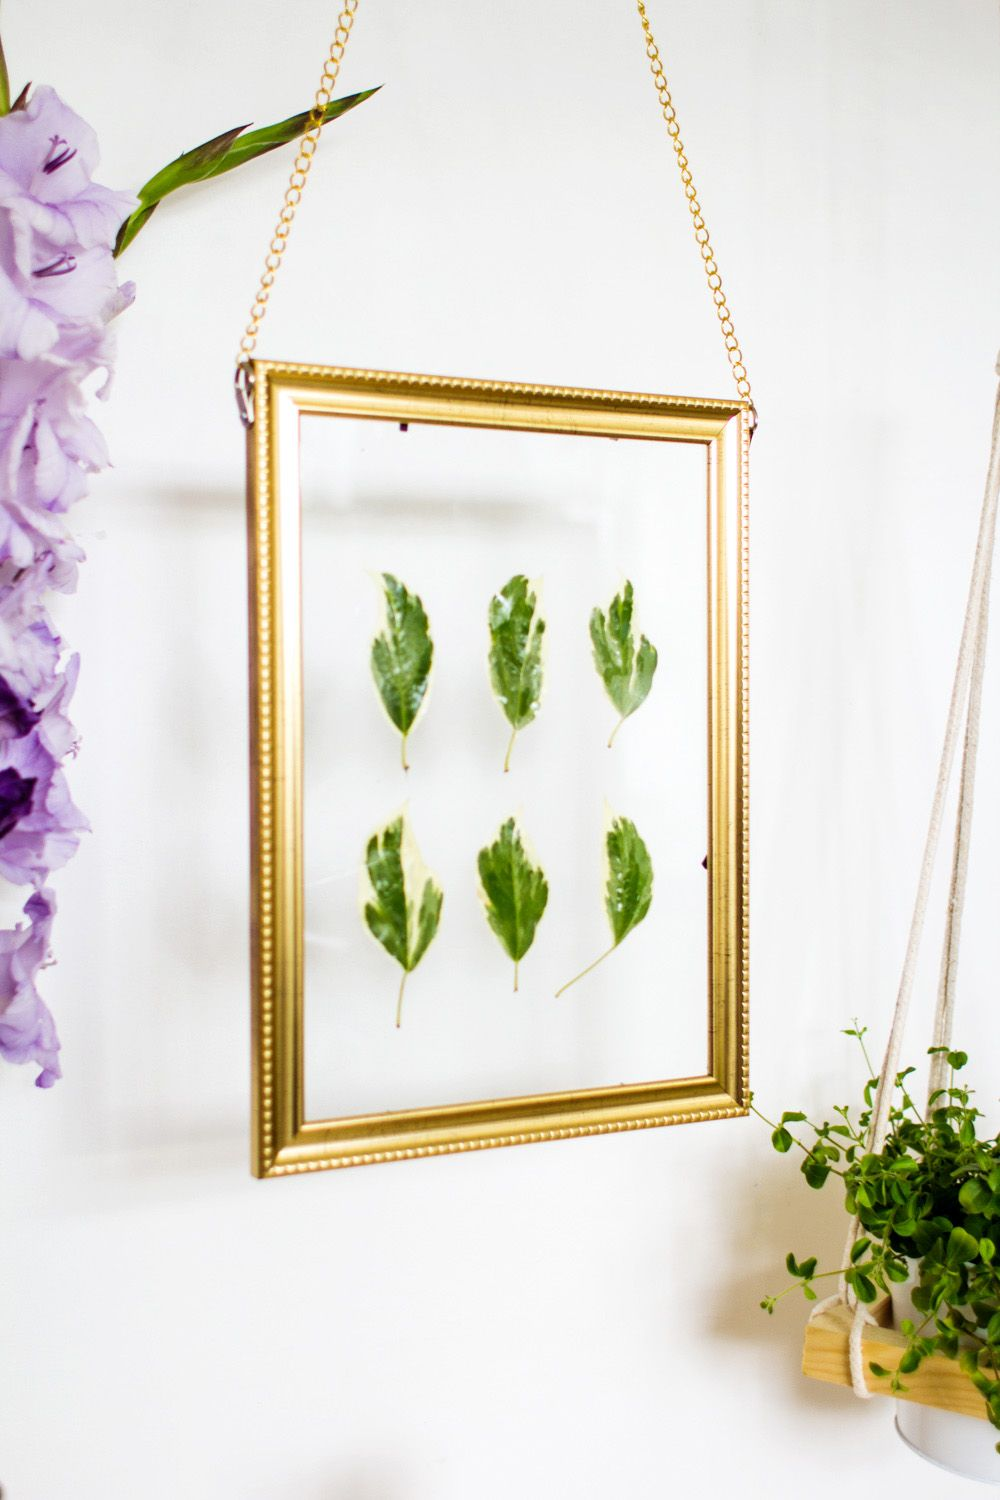 Diy Picture Frame Glass Diy Hanging Gold Frame Leaf Art